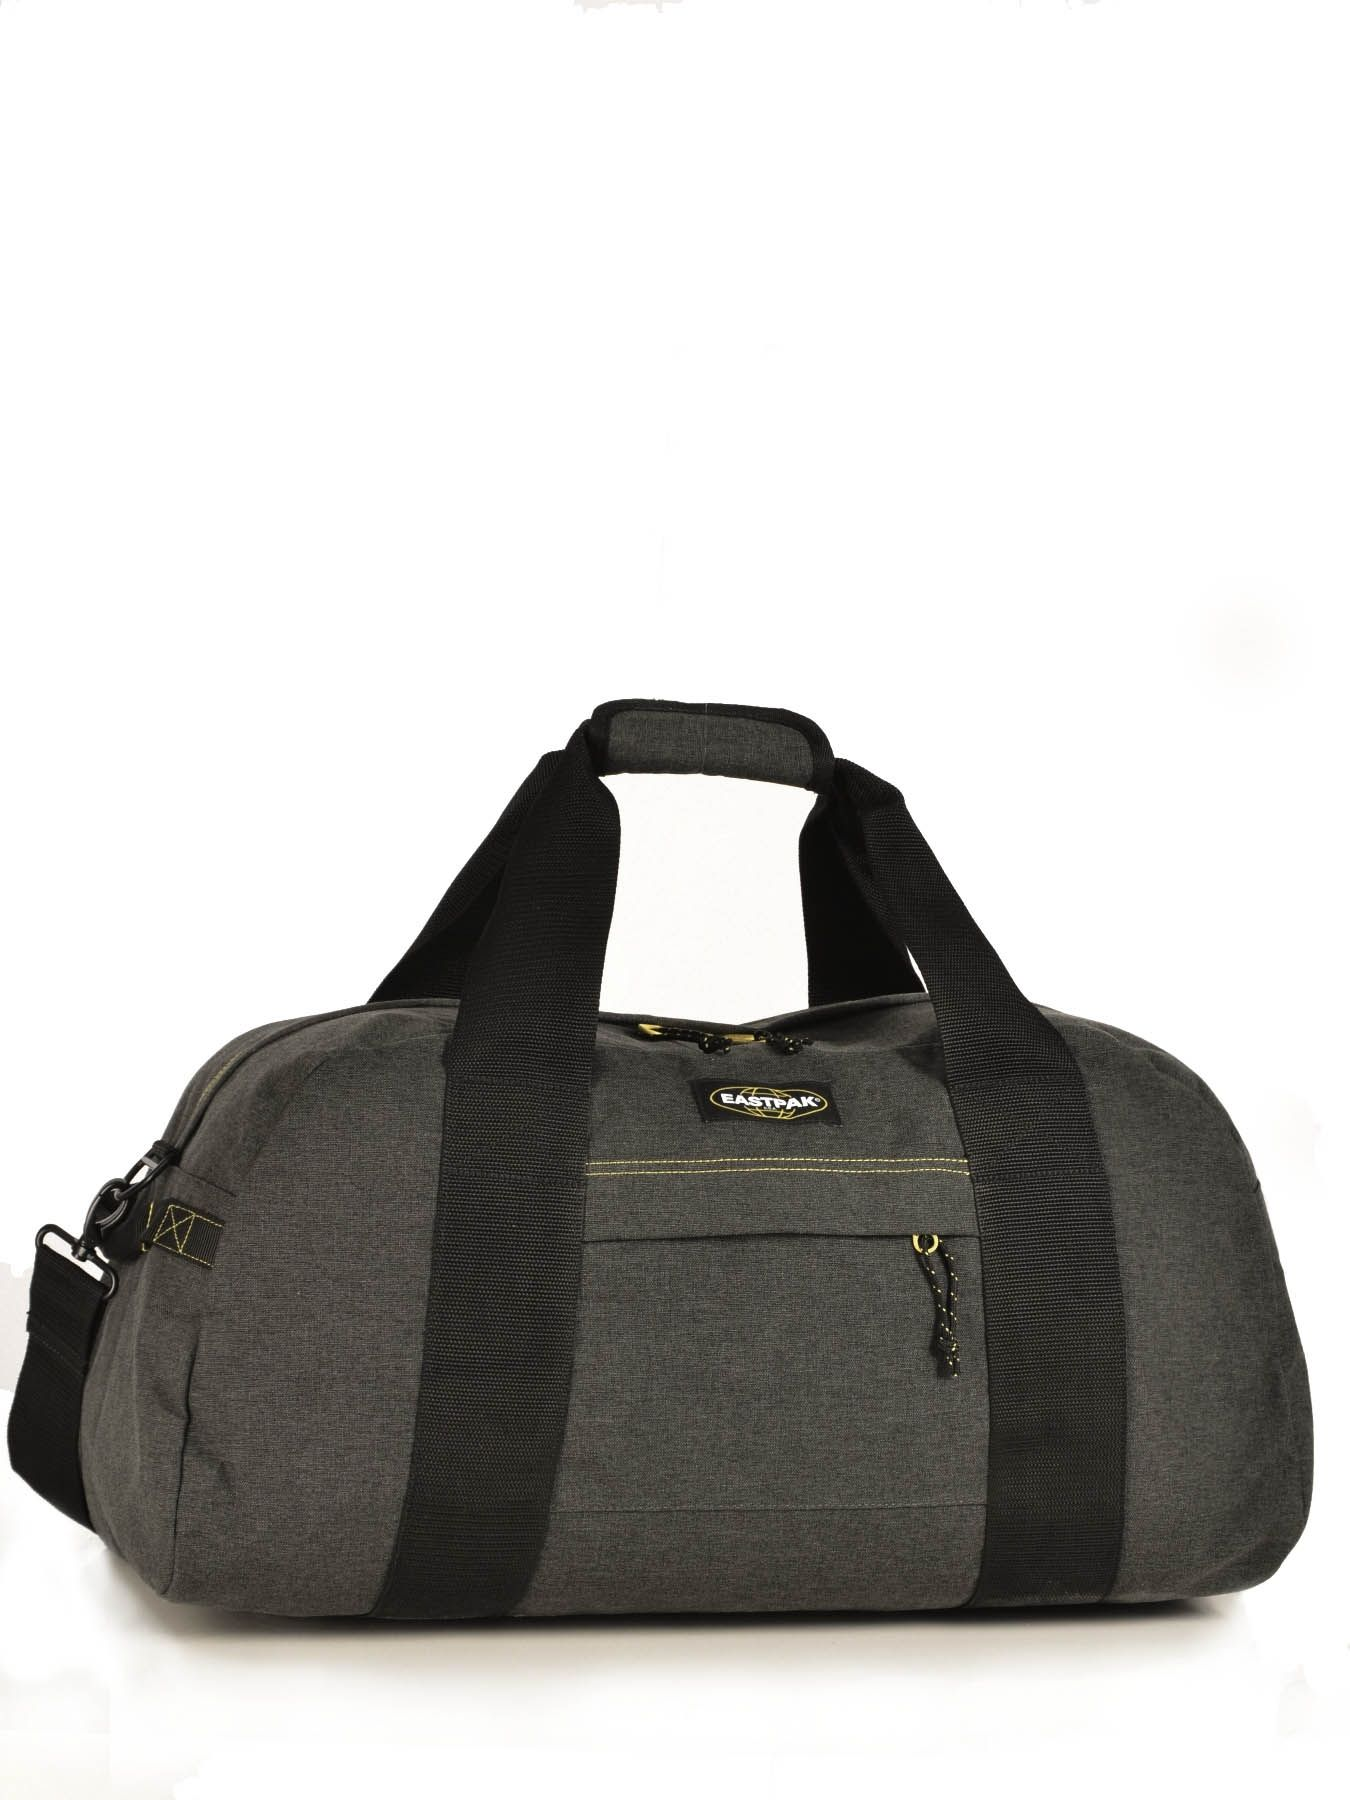 sac de voyage sans roulettes eastpak sunday grey authentic station k070. Black Bedroom Furniture Sets. Home Design Ideas